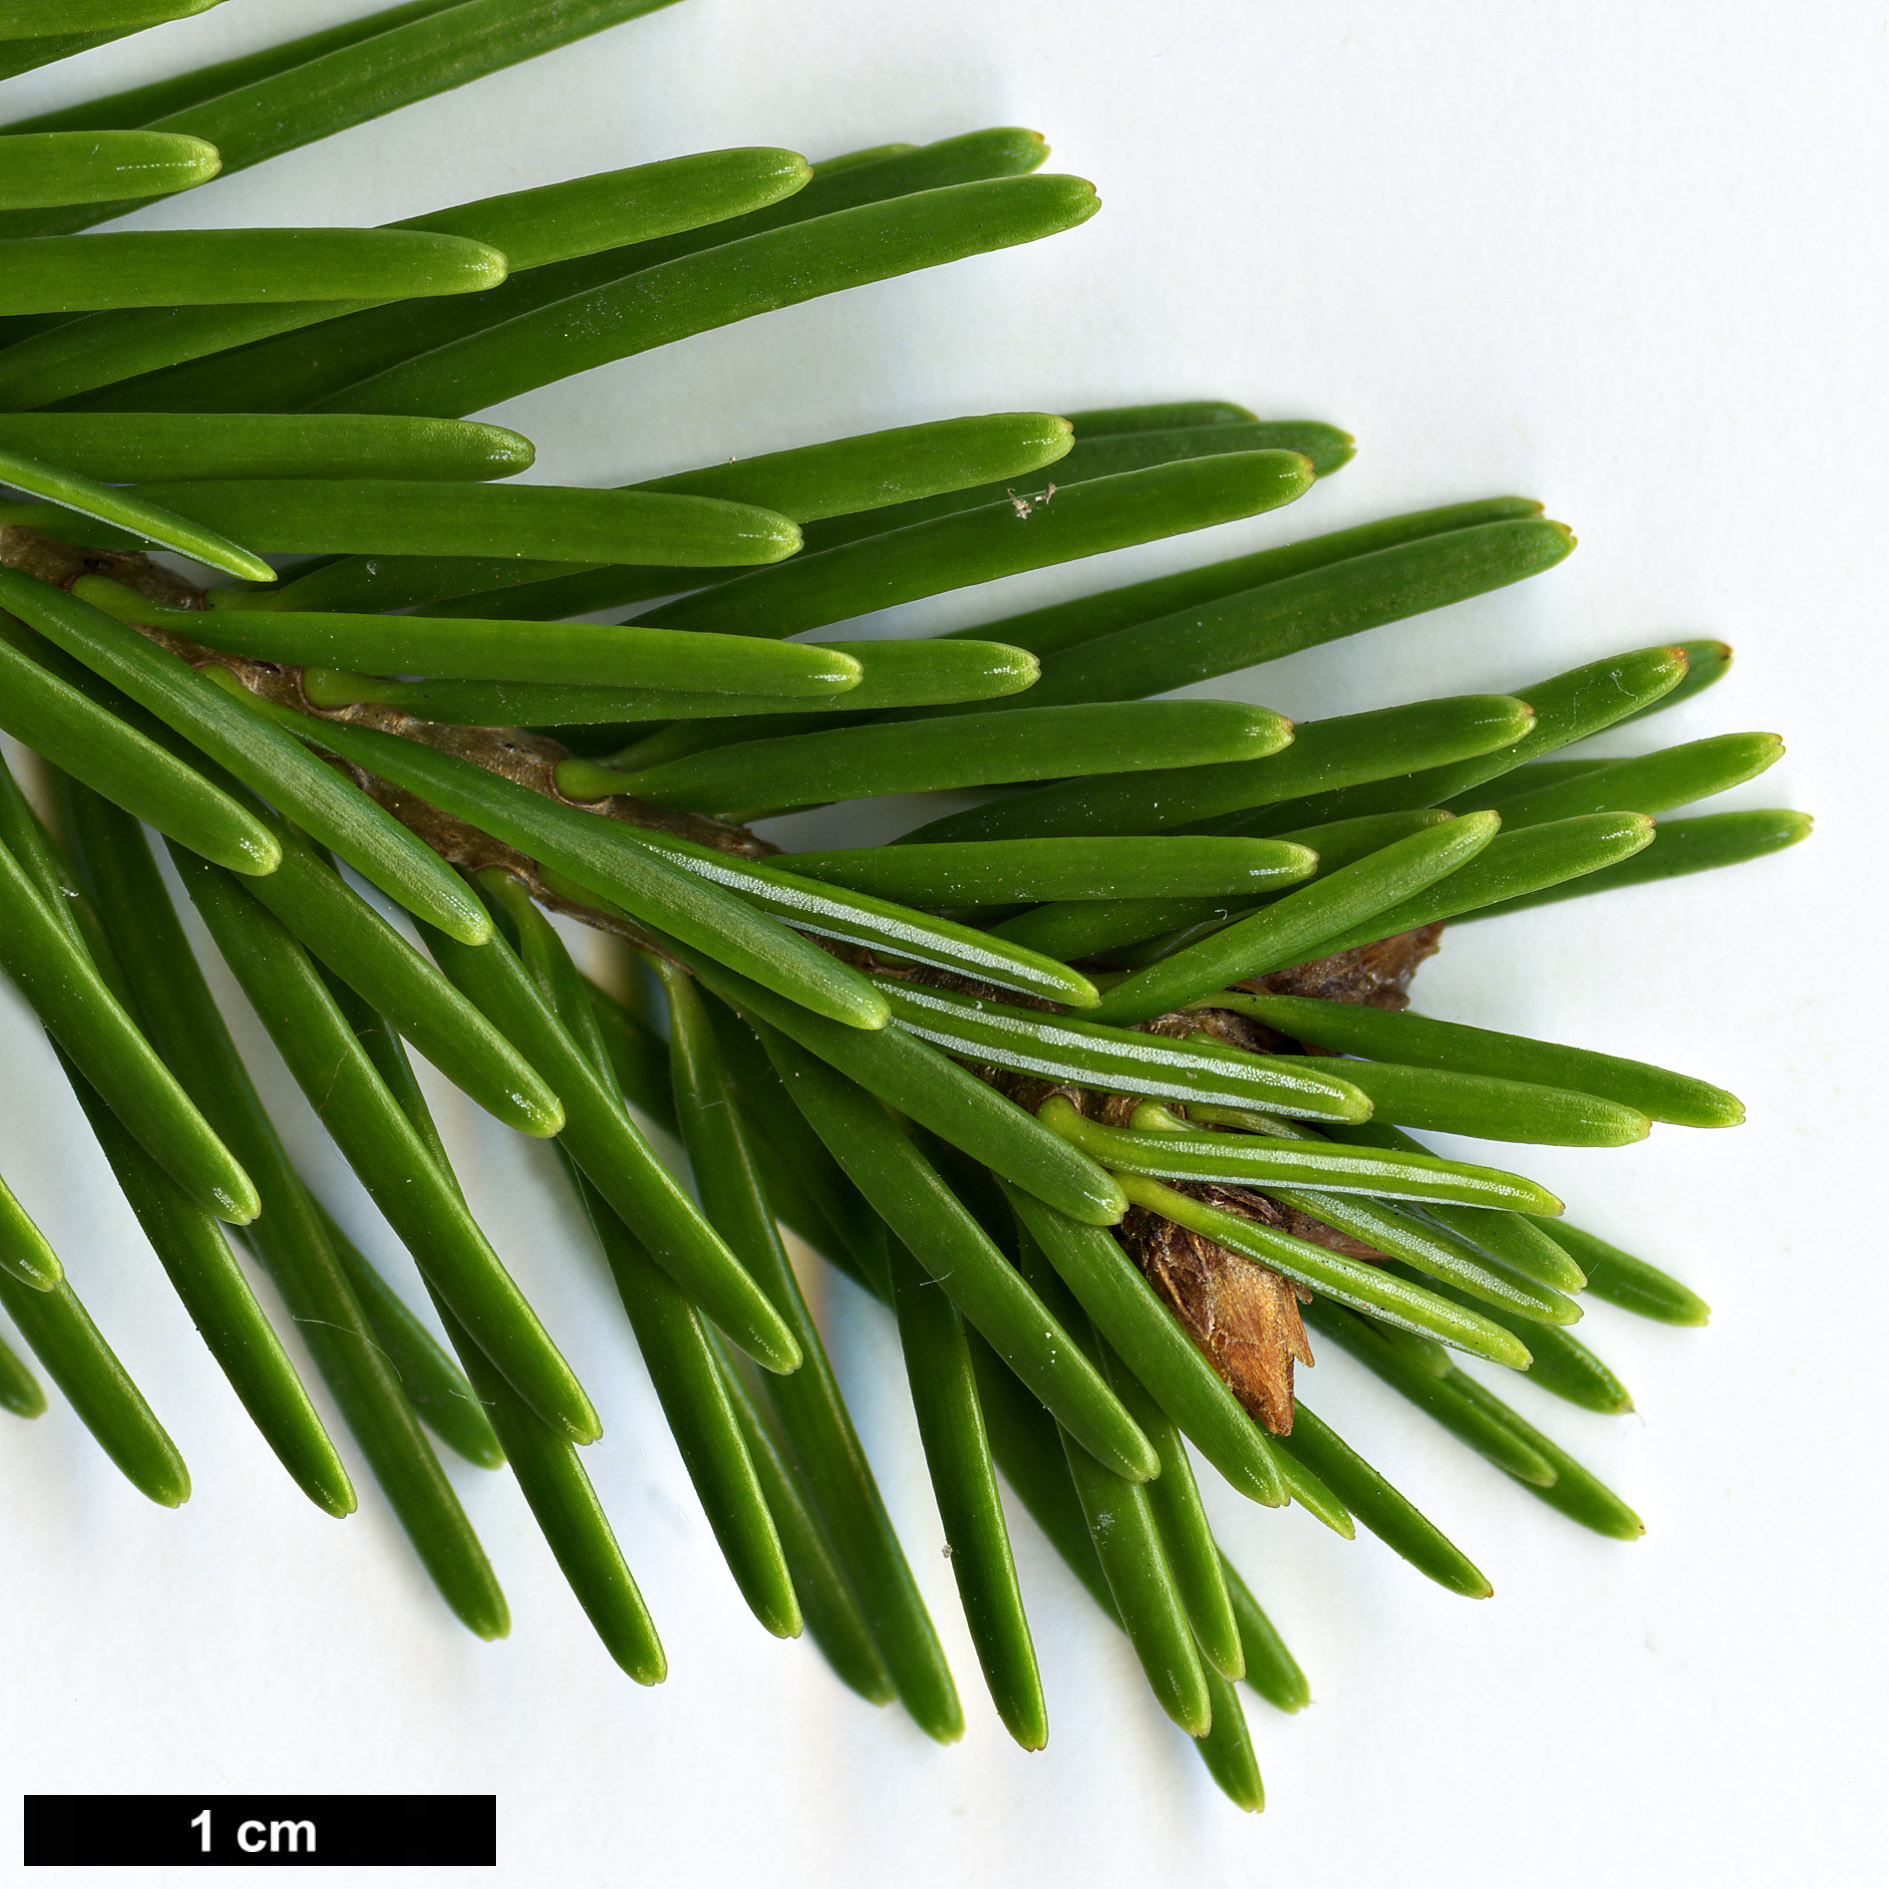 High resolution image: Family: Pinaceae - Genus: Abies - Taxon: cilicica